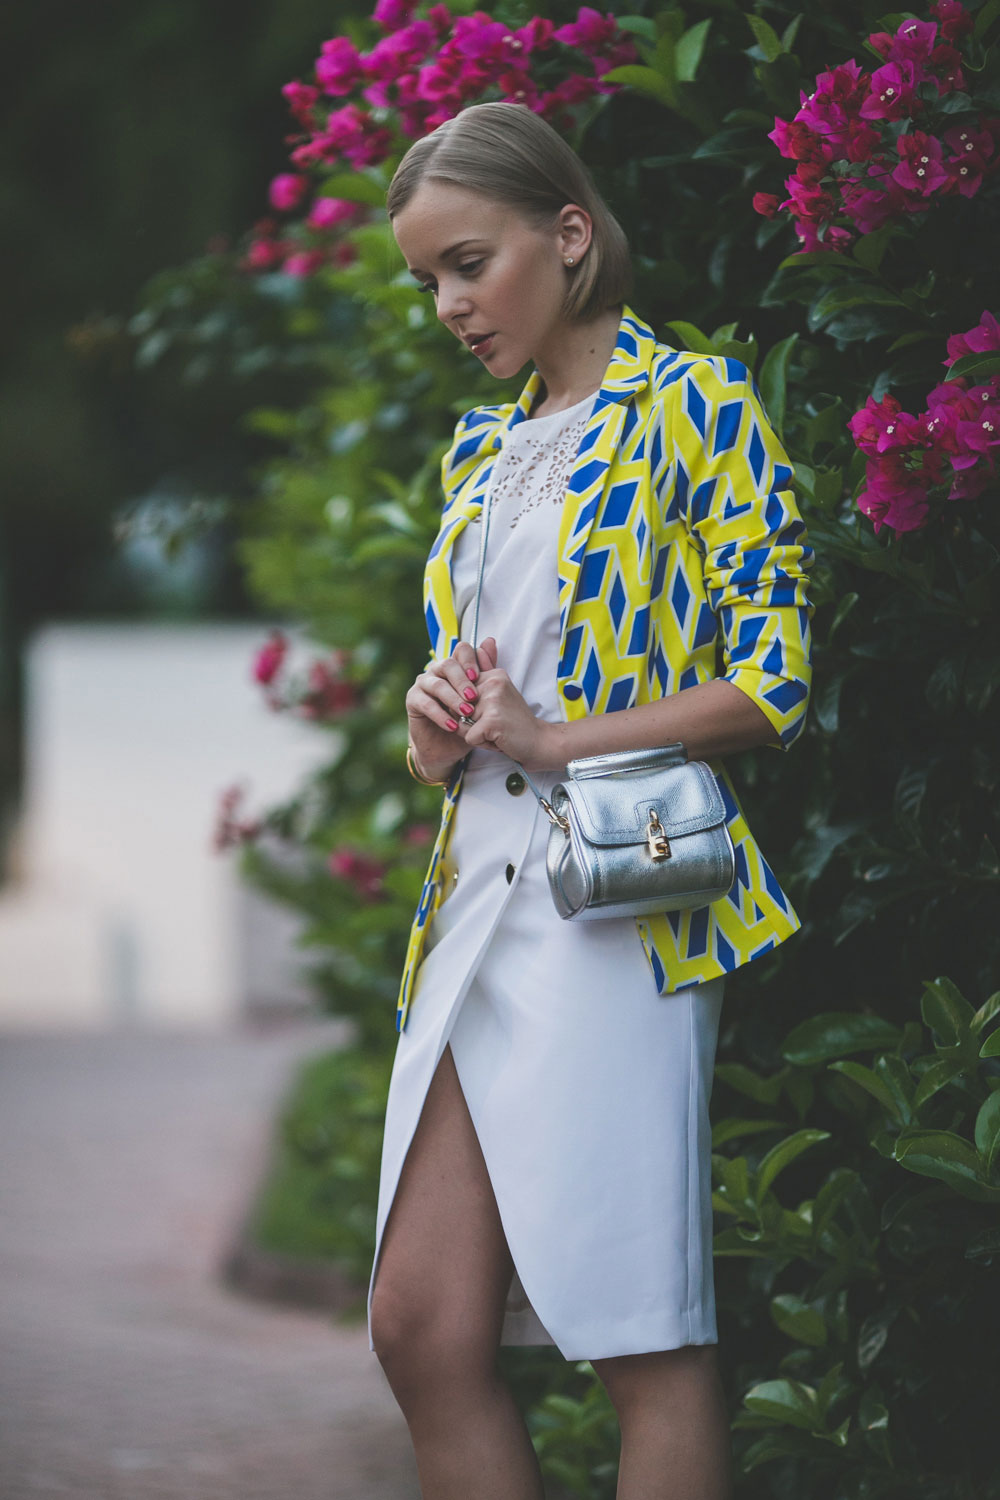 darya-kamalova-thecablook-fashion-lifestyle-blogger-from-thecablook-com-in-puglia-gargano-baia-dei-faraglioni-allegro-italia-in-zara-white-skirt-dolce-gabbana-crossbody-bag-missguided-blue-sandals-1738